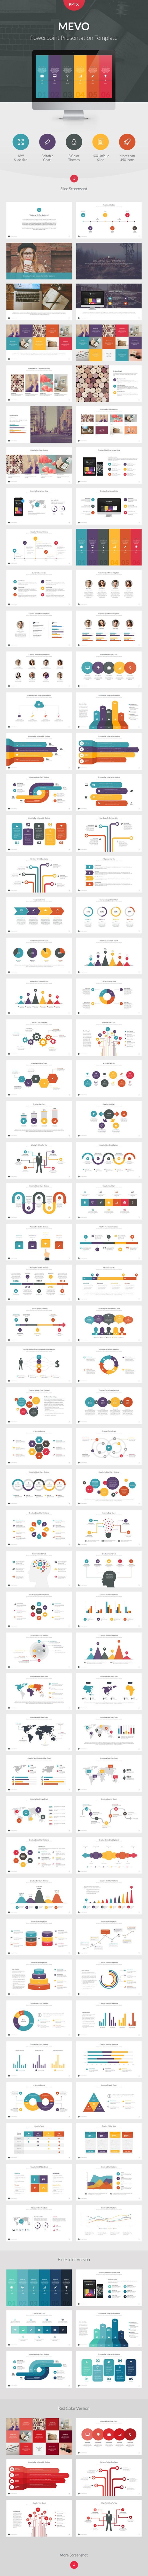 Mevo Powerpoint Presentation Template (Powerpoint Templates)